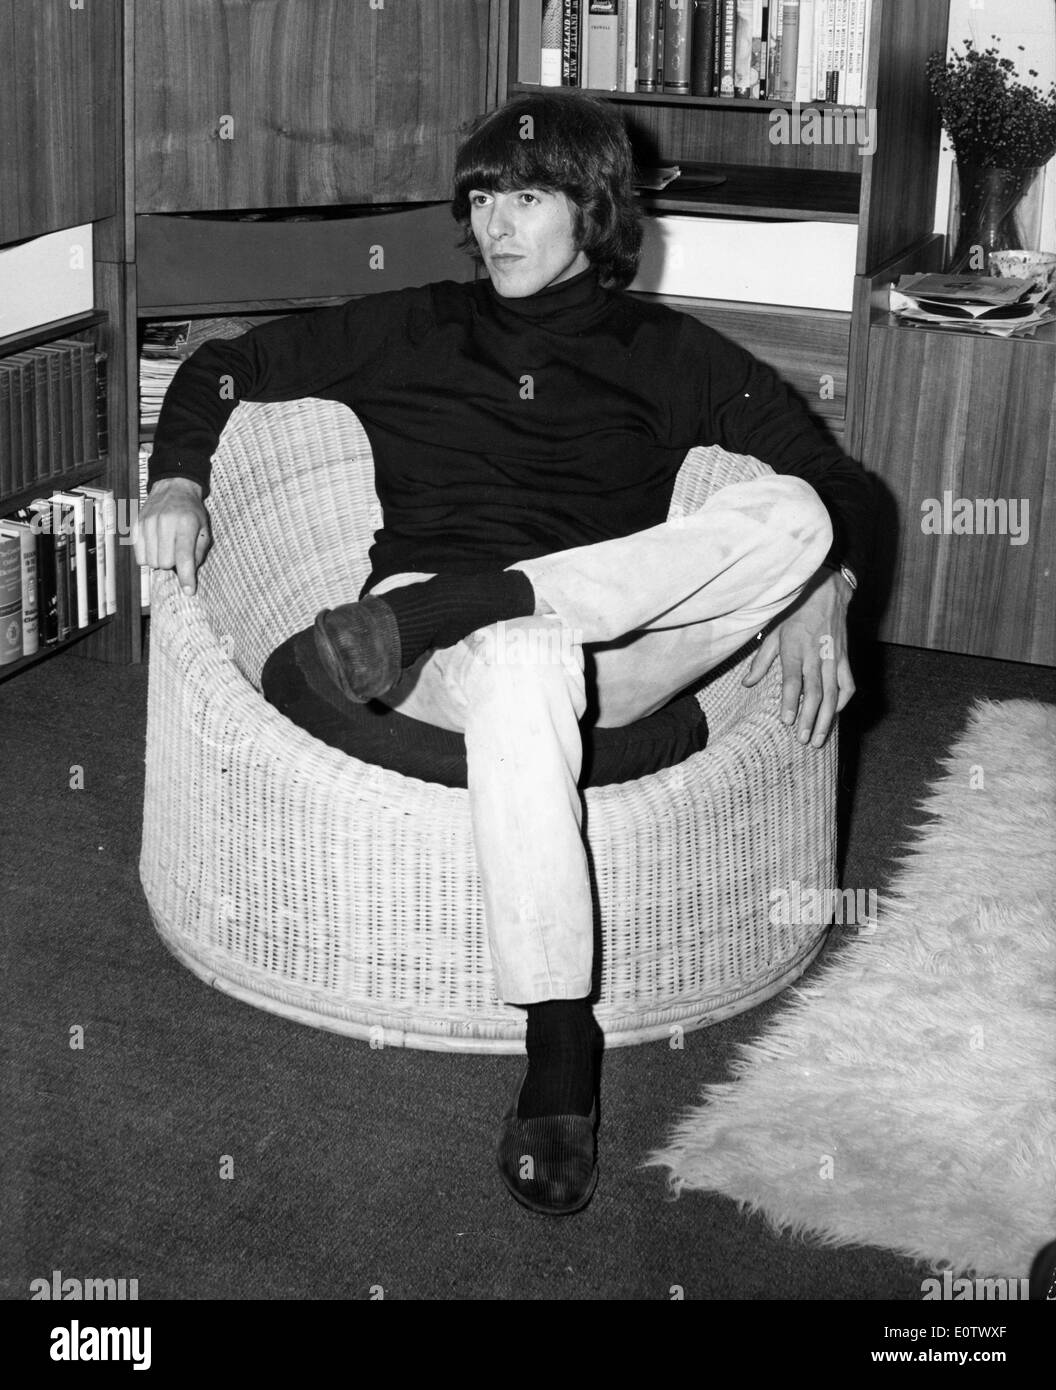 Beatle George Harrison relaxing in the living room - Stock Image